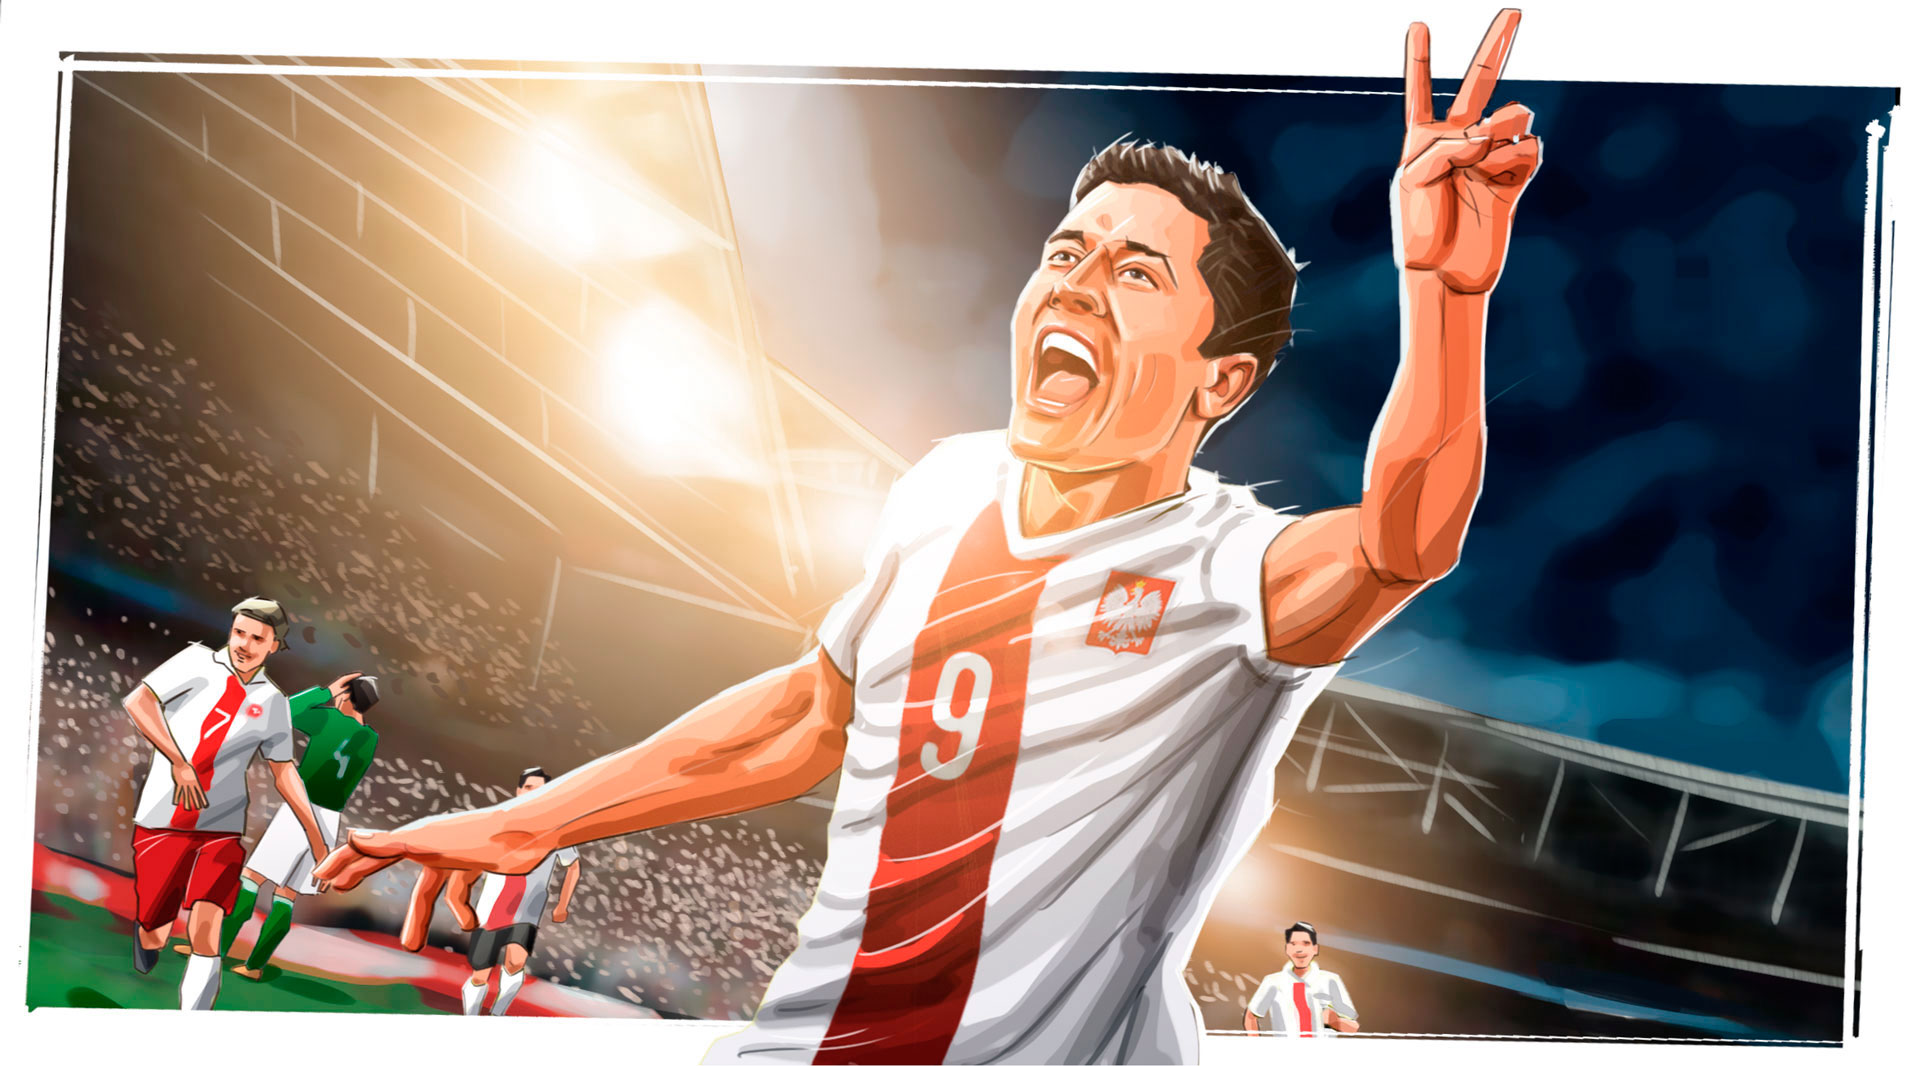 lewandowski winner soccer illustration game advertising